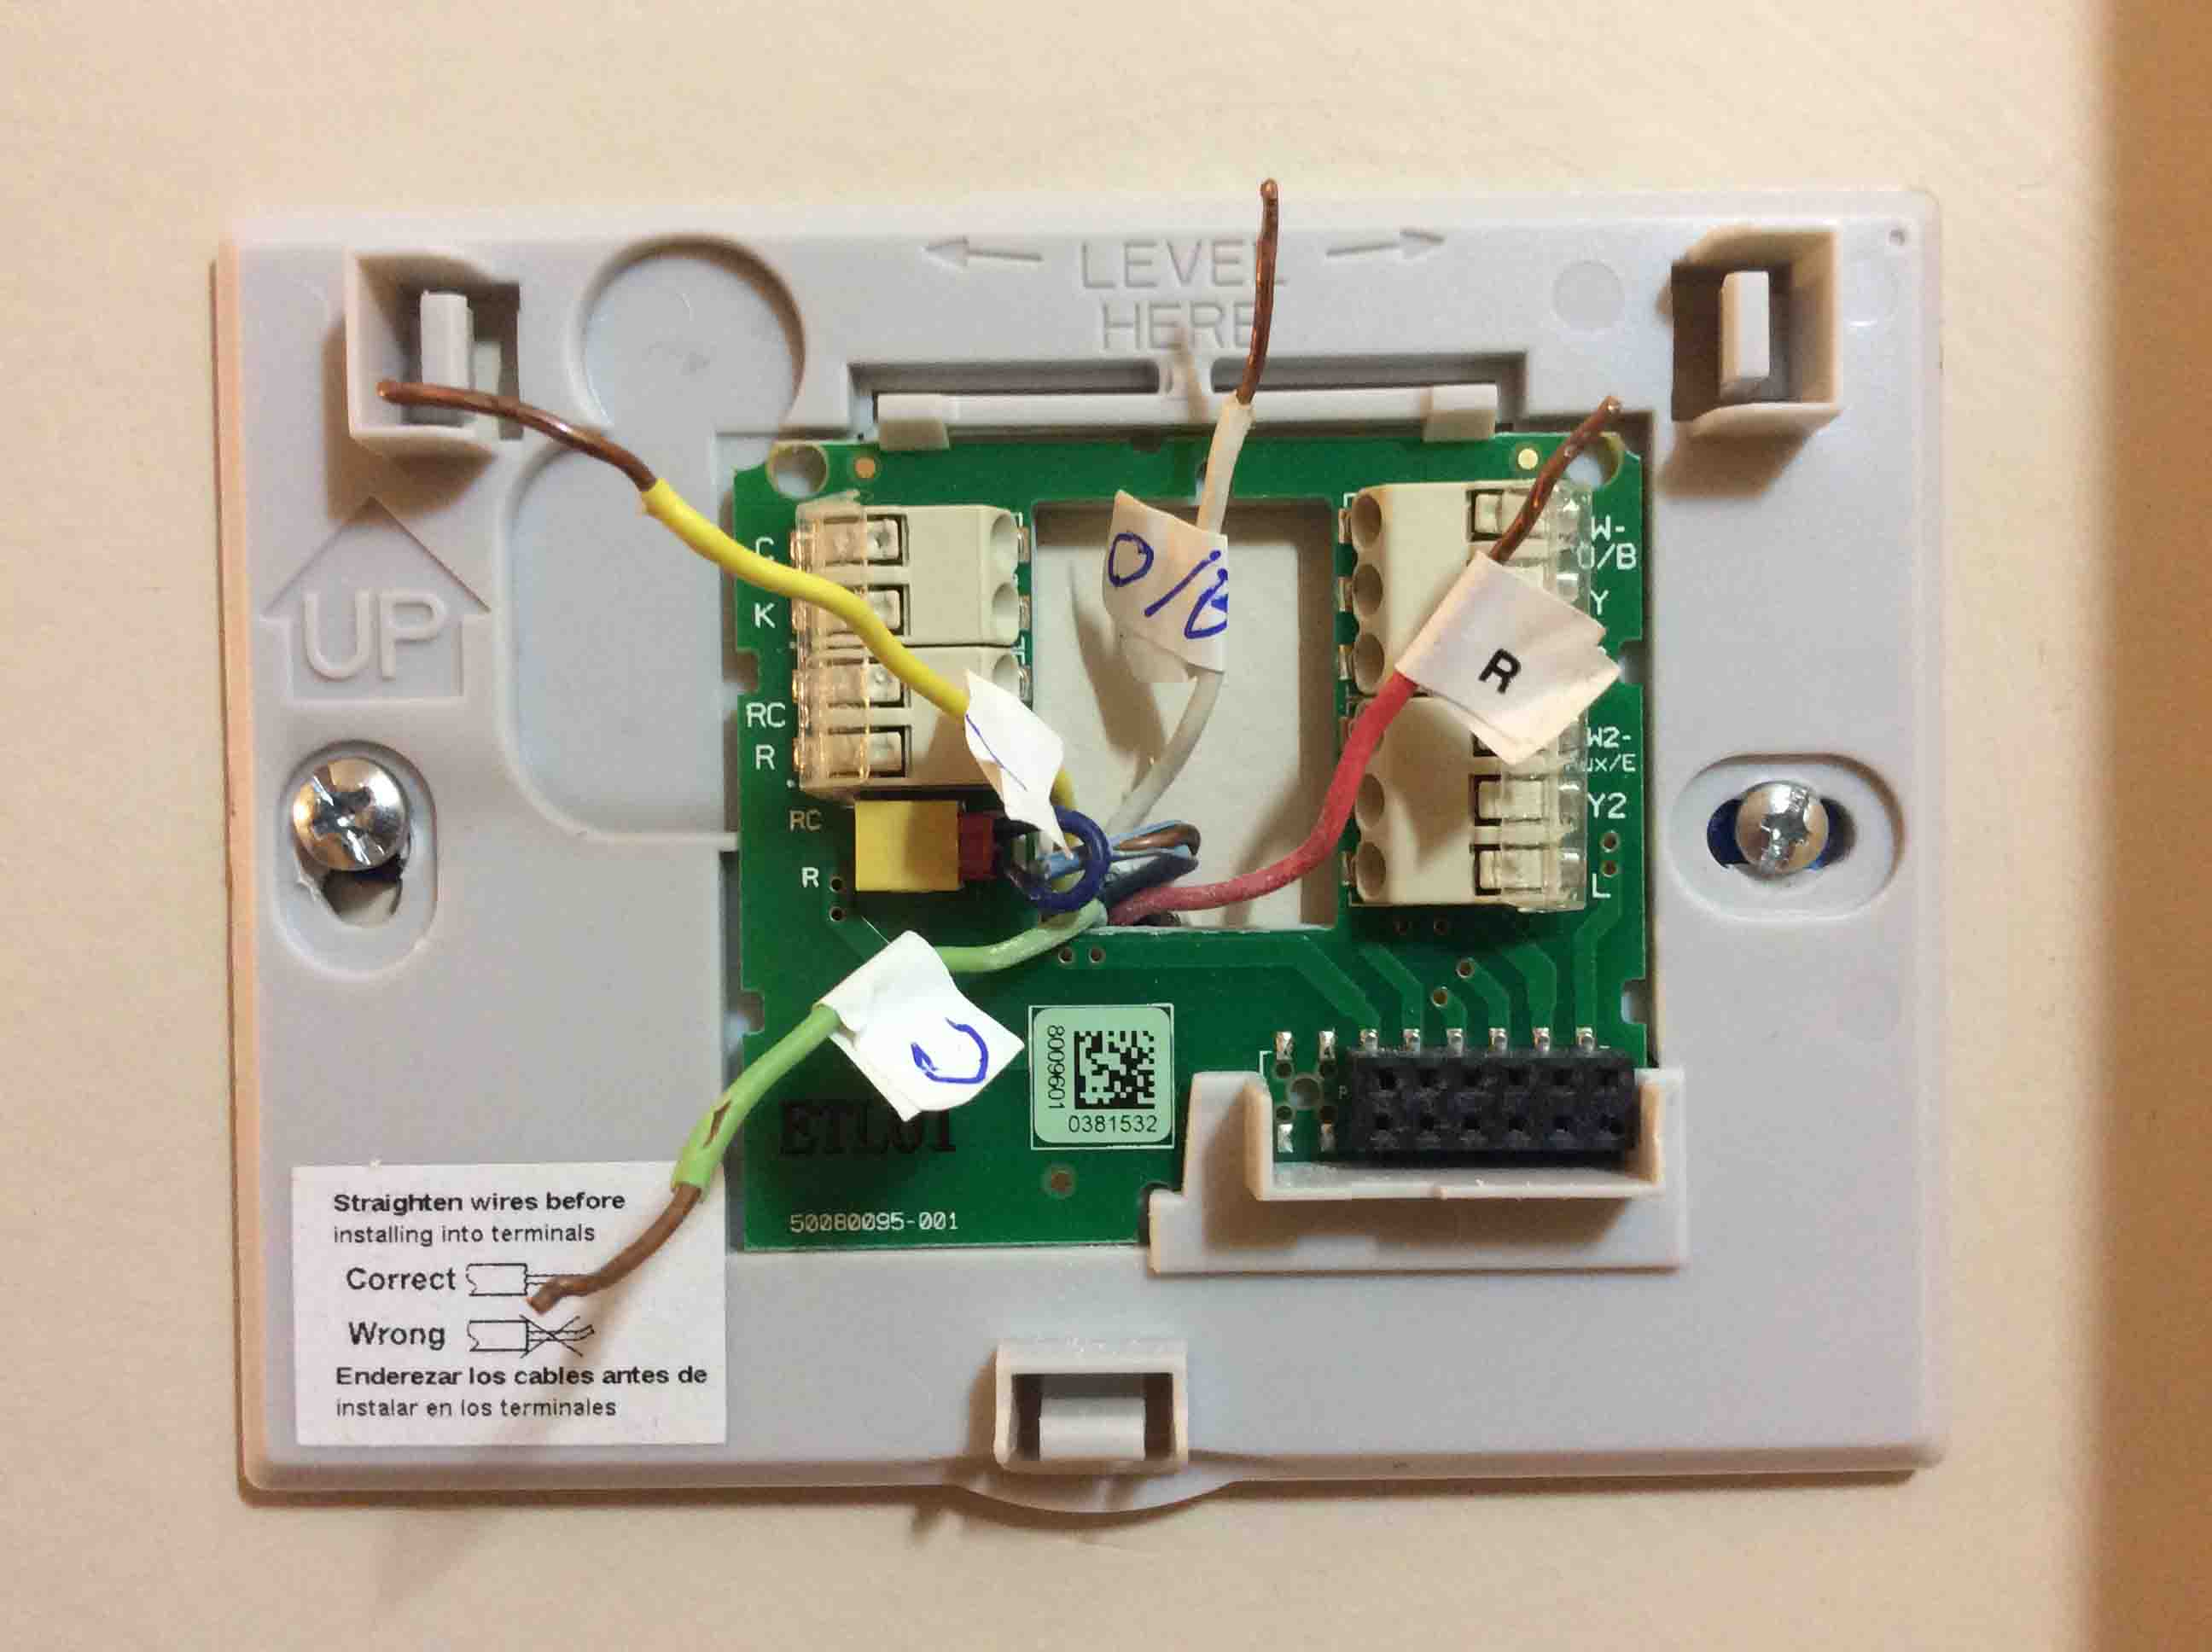 HoneywellSmartThermostatRTH9580WFWallPlateMounted_001 honeywell smart thermostat wiring instructions rth9580wf tom's wiring diagram for honeywell rth6580wf at n-0.co